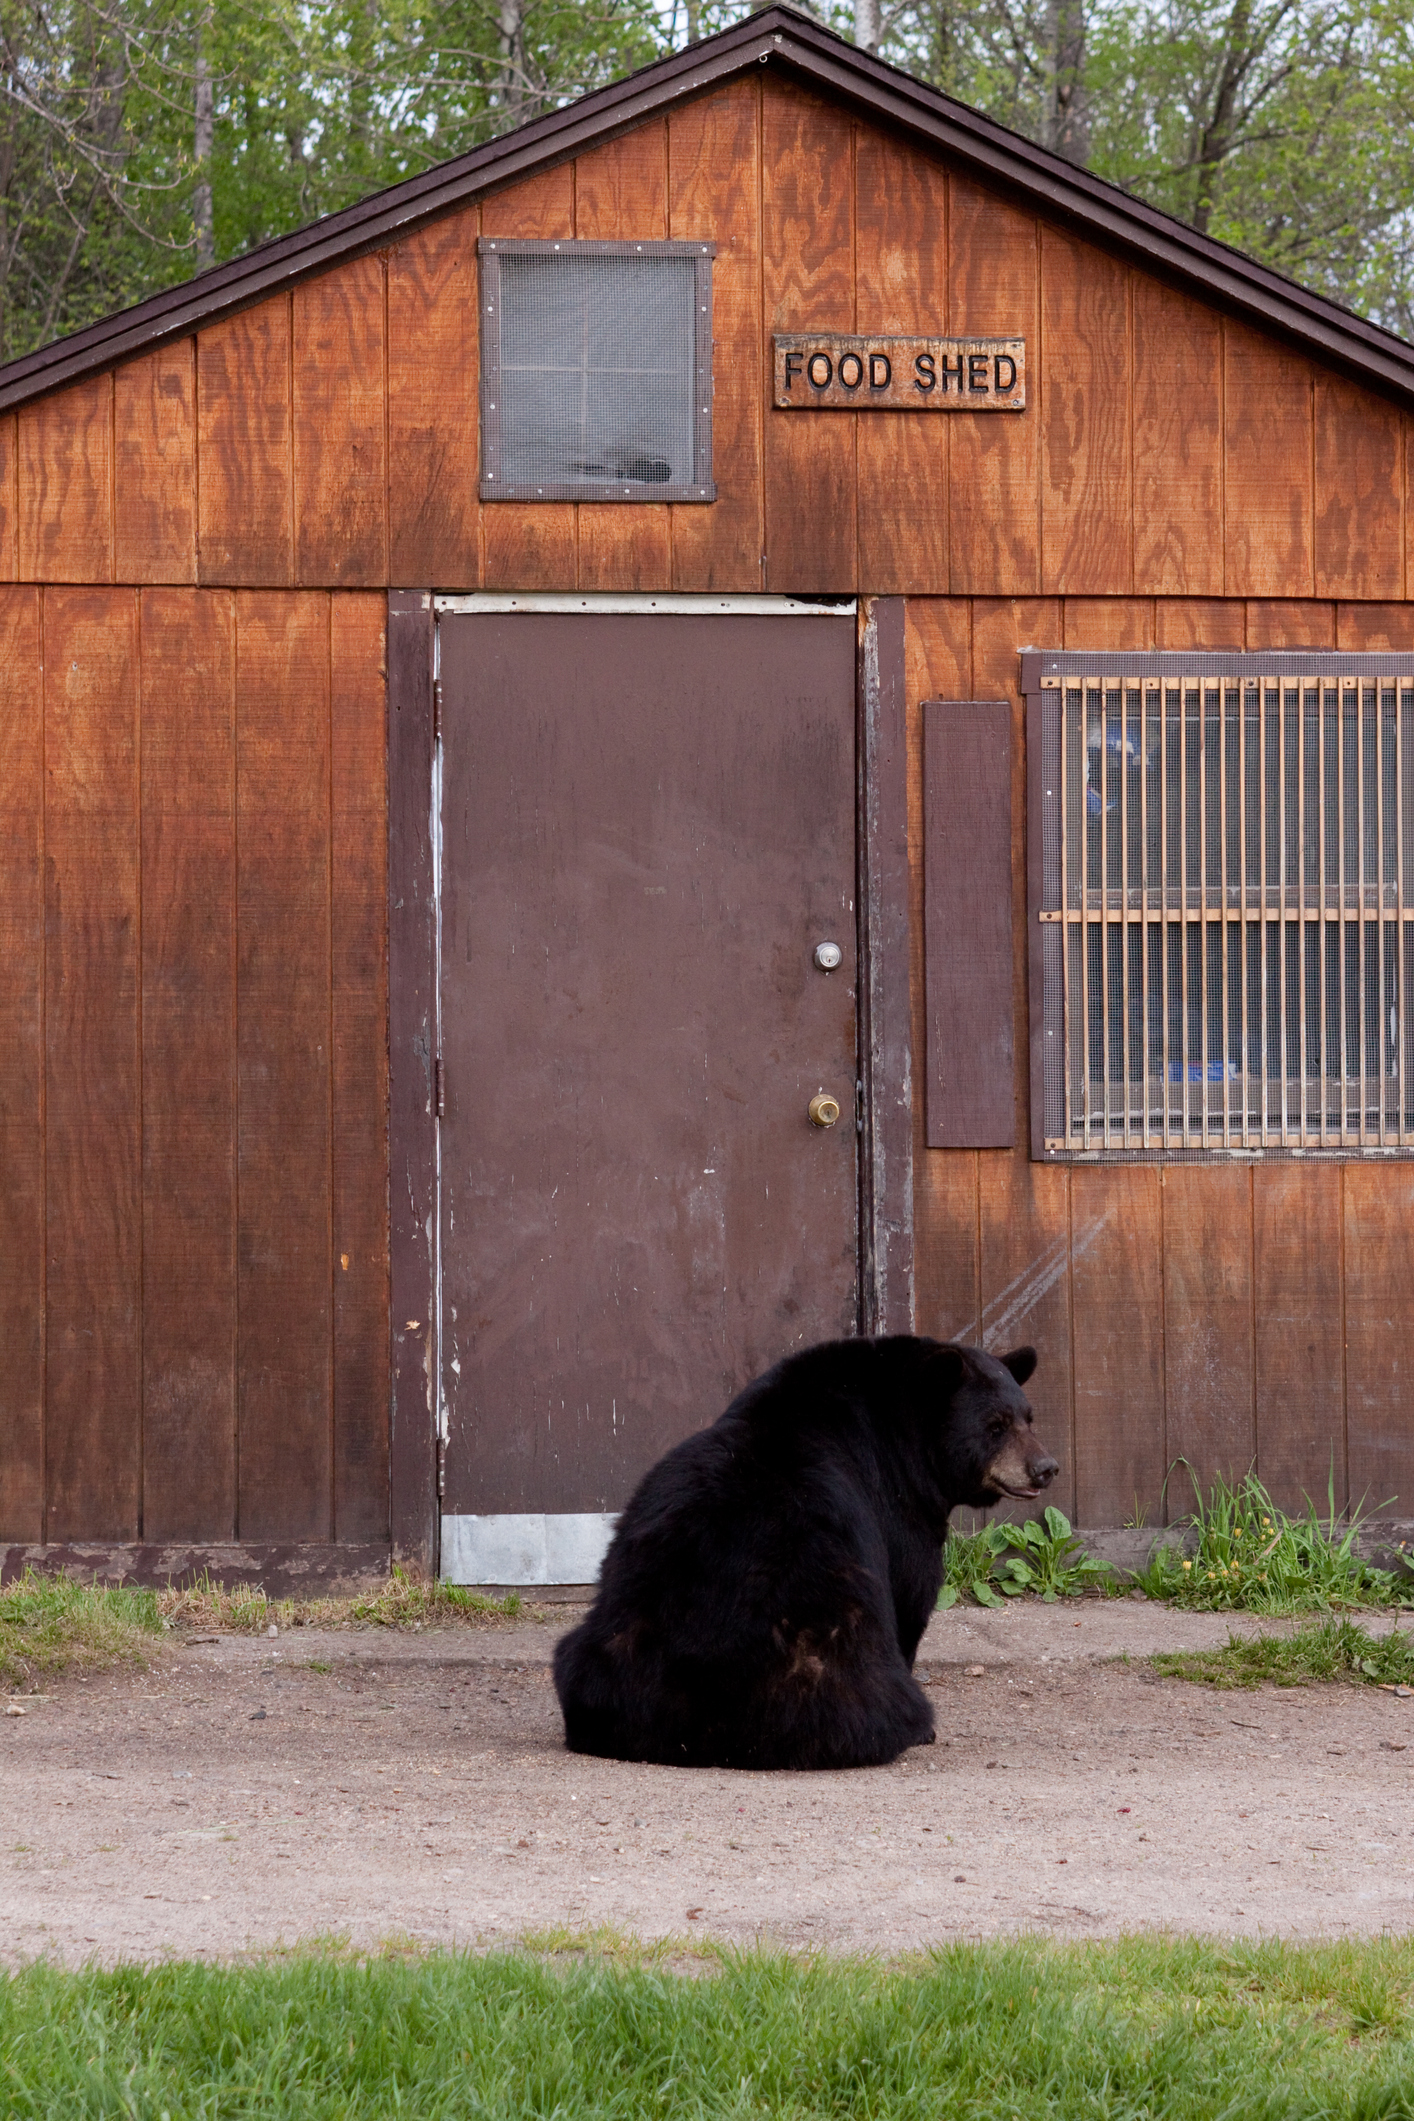 black bear at shed